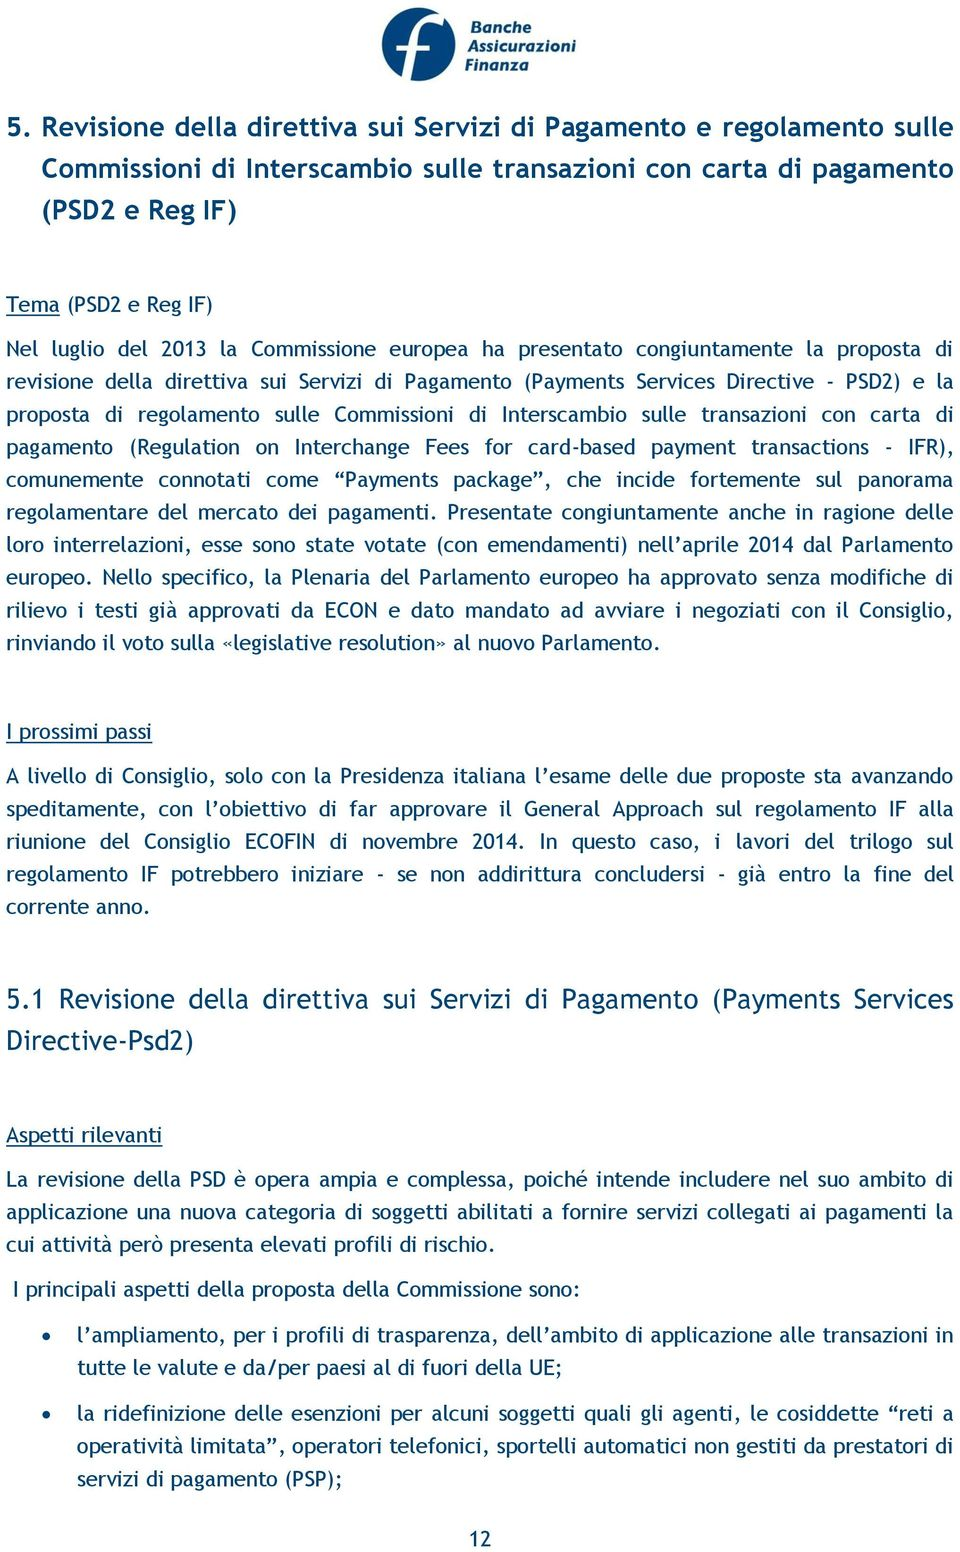 Commissioni di Interscambio sulle transazioni con carta di pagamento (Regulation on Interchange Fees for card-based payment transactions - IFR), comunemente connotati come Payments package, che